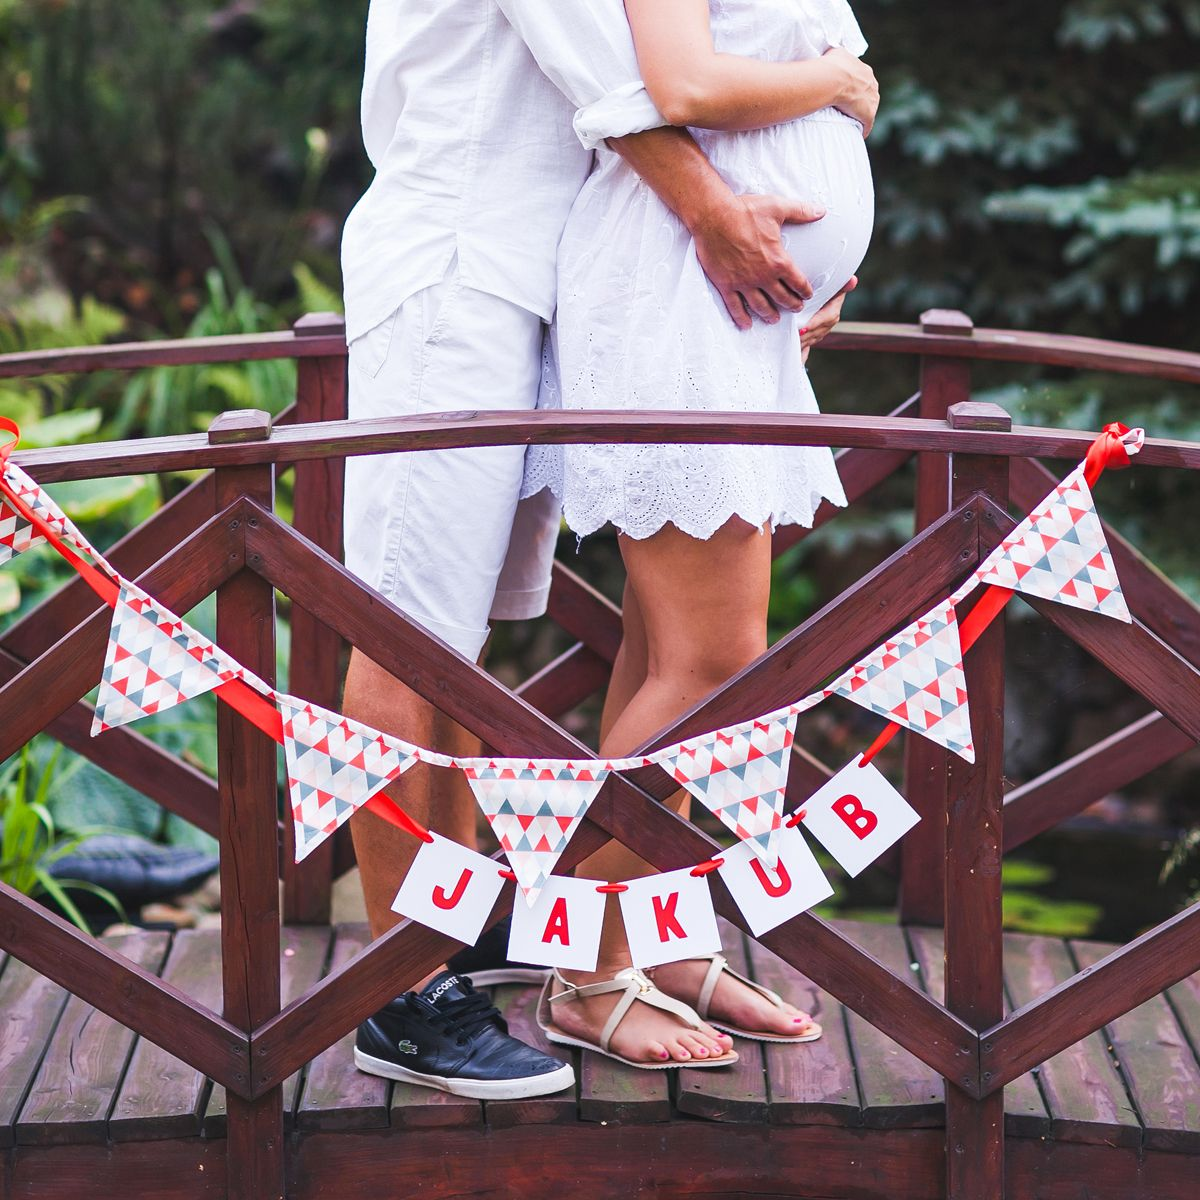 Beautiful couple expecting their son Jakub, lovely girland, Linna Morata fabric and photo by katarzyna-gabriela.pl #garland #pregnant #pattern #fabric